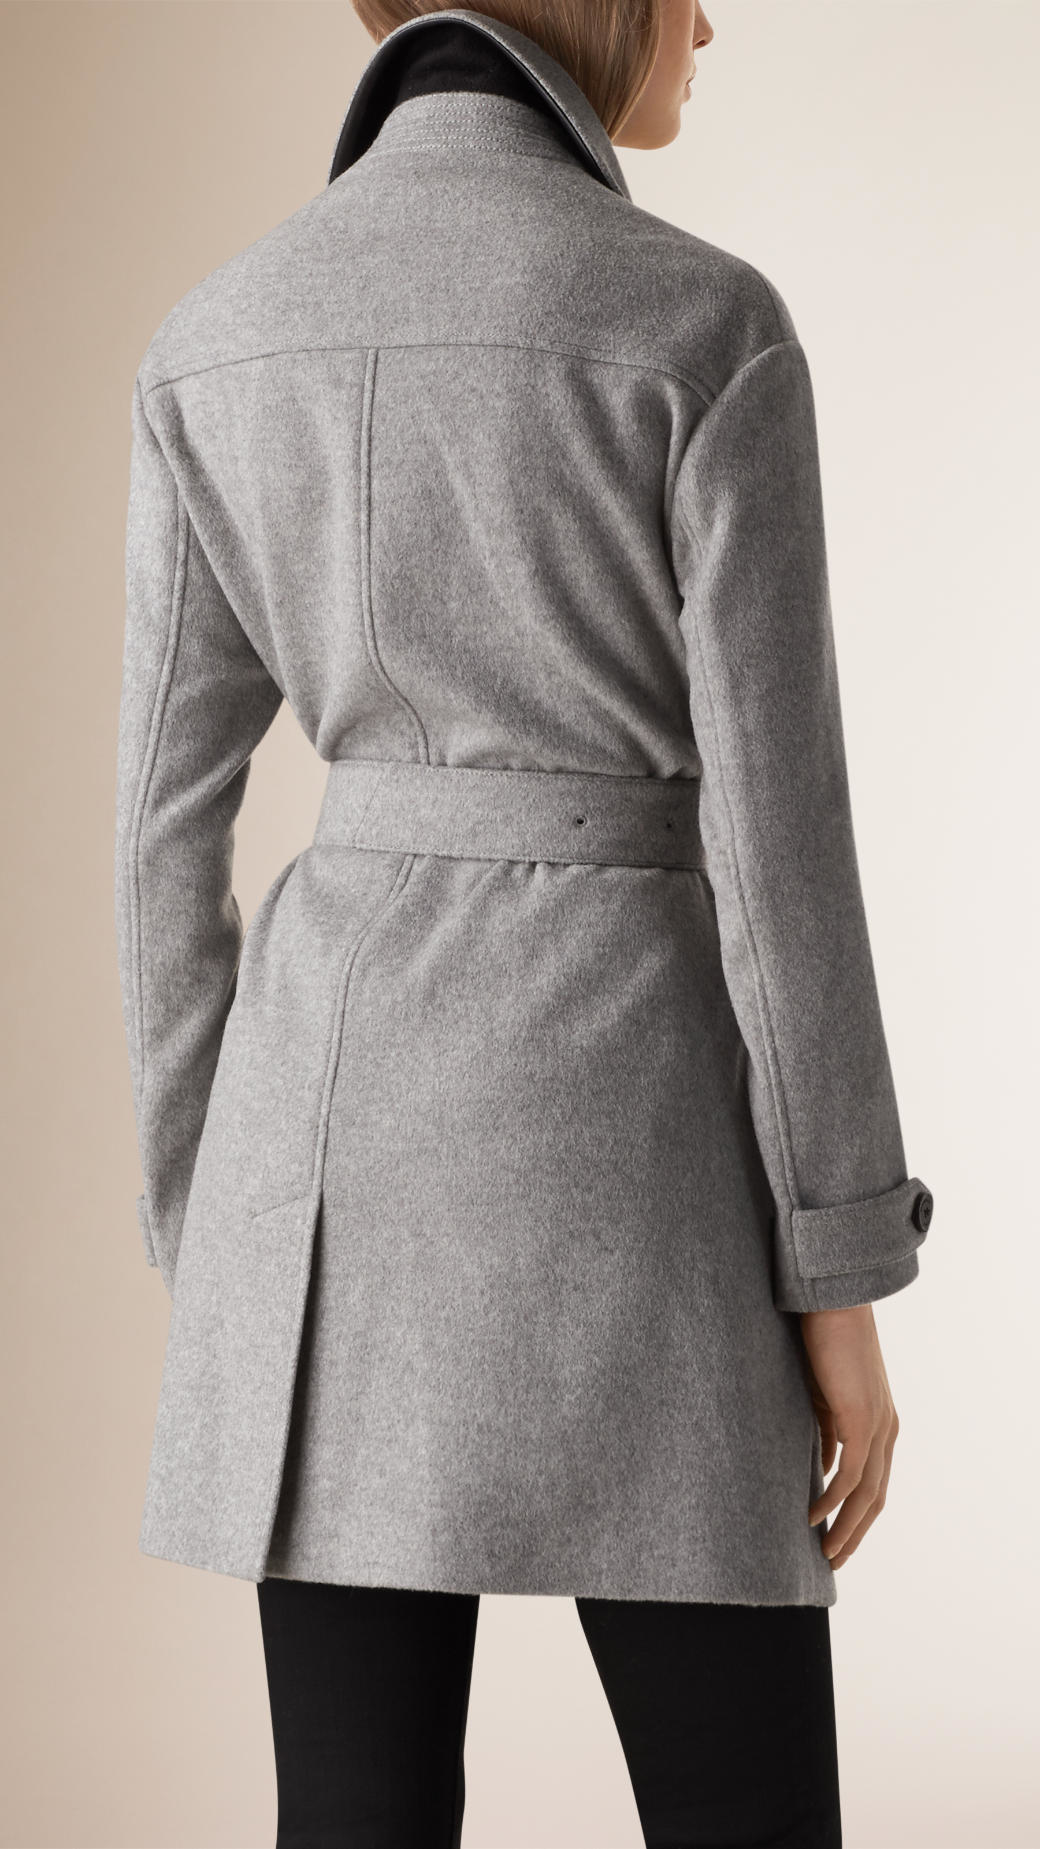 Burberry Lambskin Trim Wool Cashmere Wrap Coat In Gray Lyst